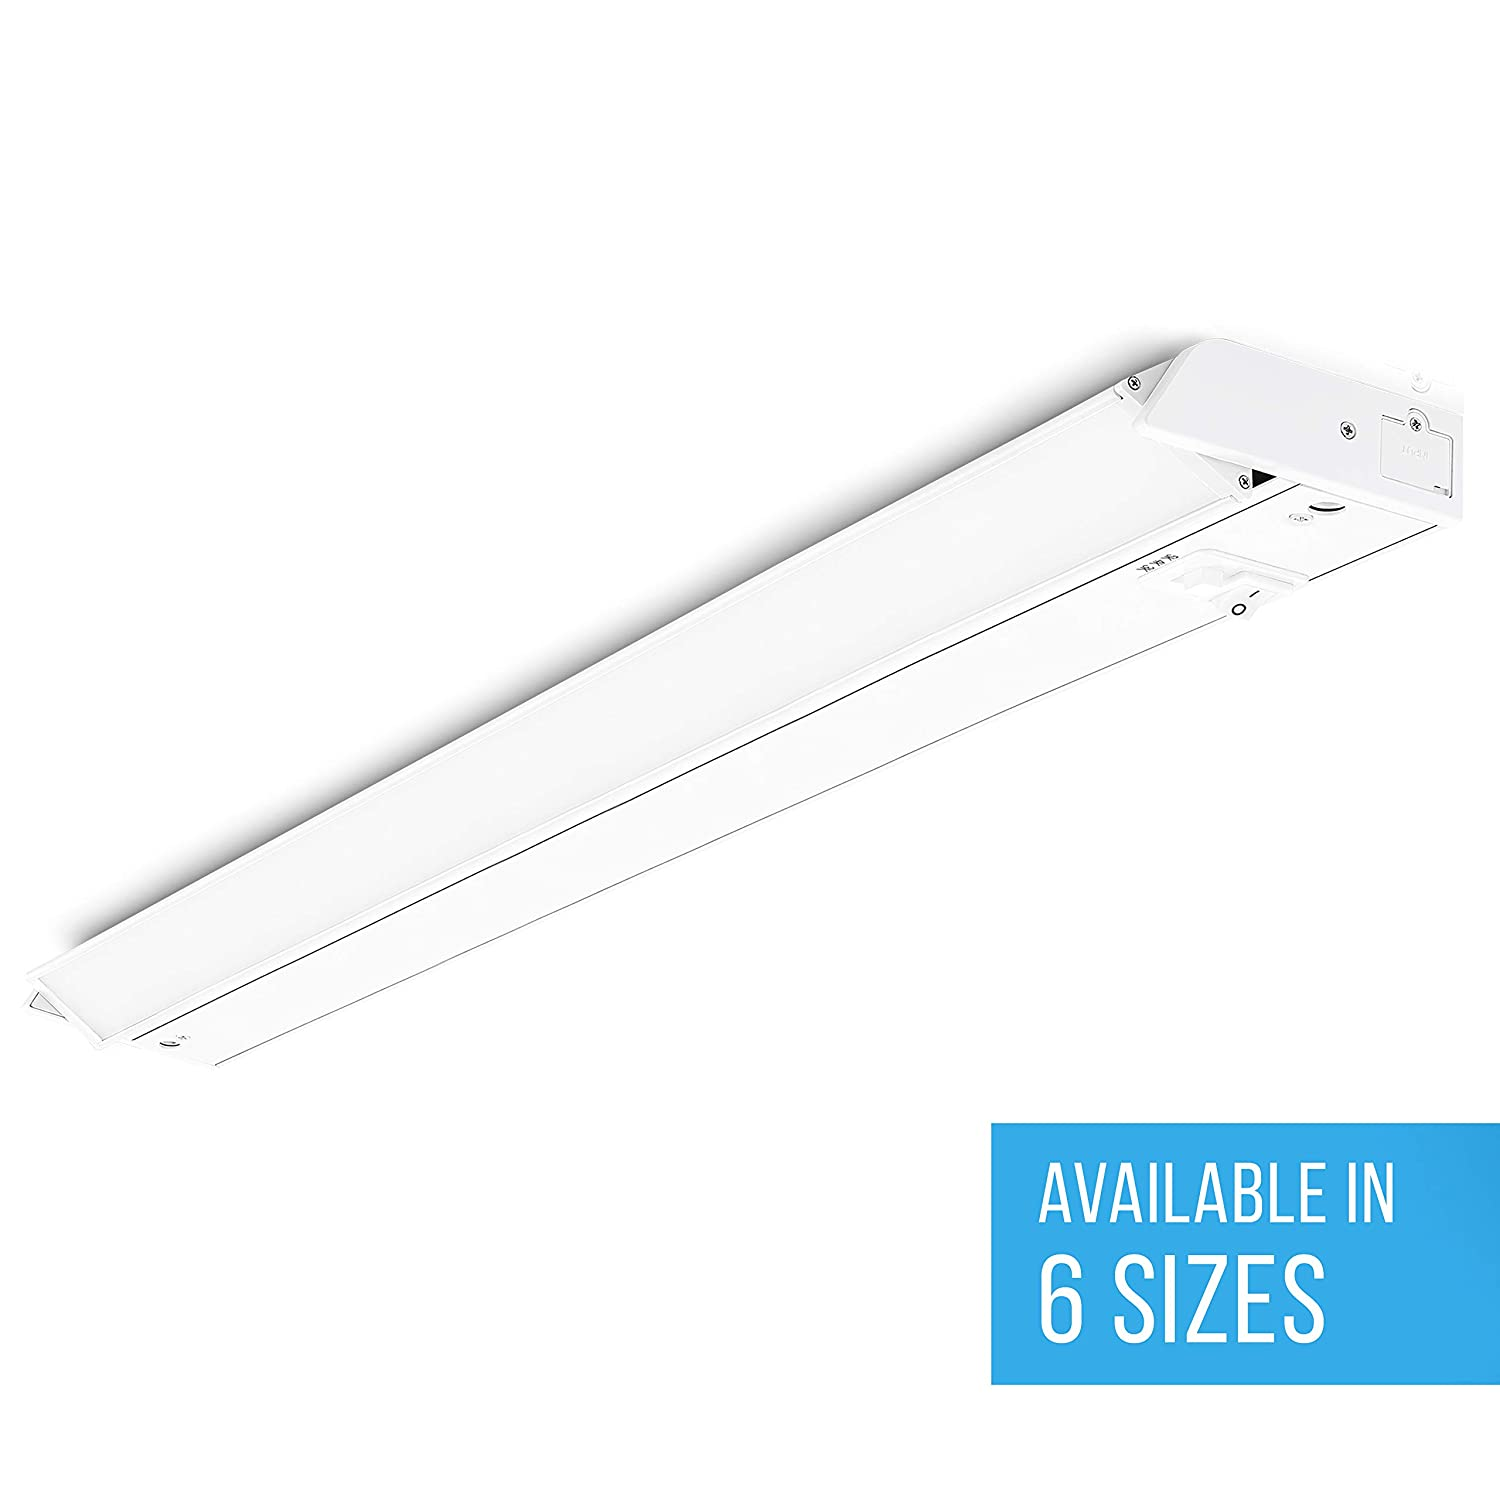 Parmida LED Swivel Under Cabinet Light (Adjustable Lens Angle), 32 Inch, 18W, 1080lm, Dimmable, Linkable, 3-in-1 Color Levels, Hardwire or Plug-in, On/Off Switch, ETL & ENERGY STAR, 120V